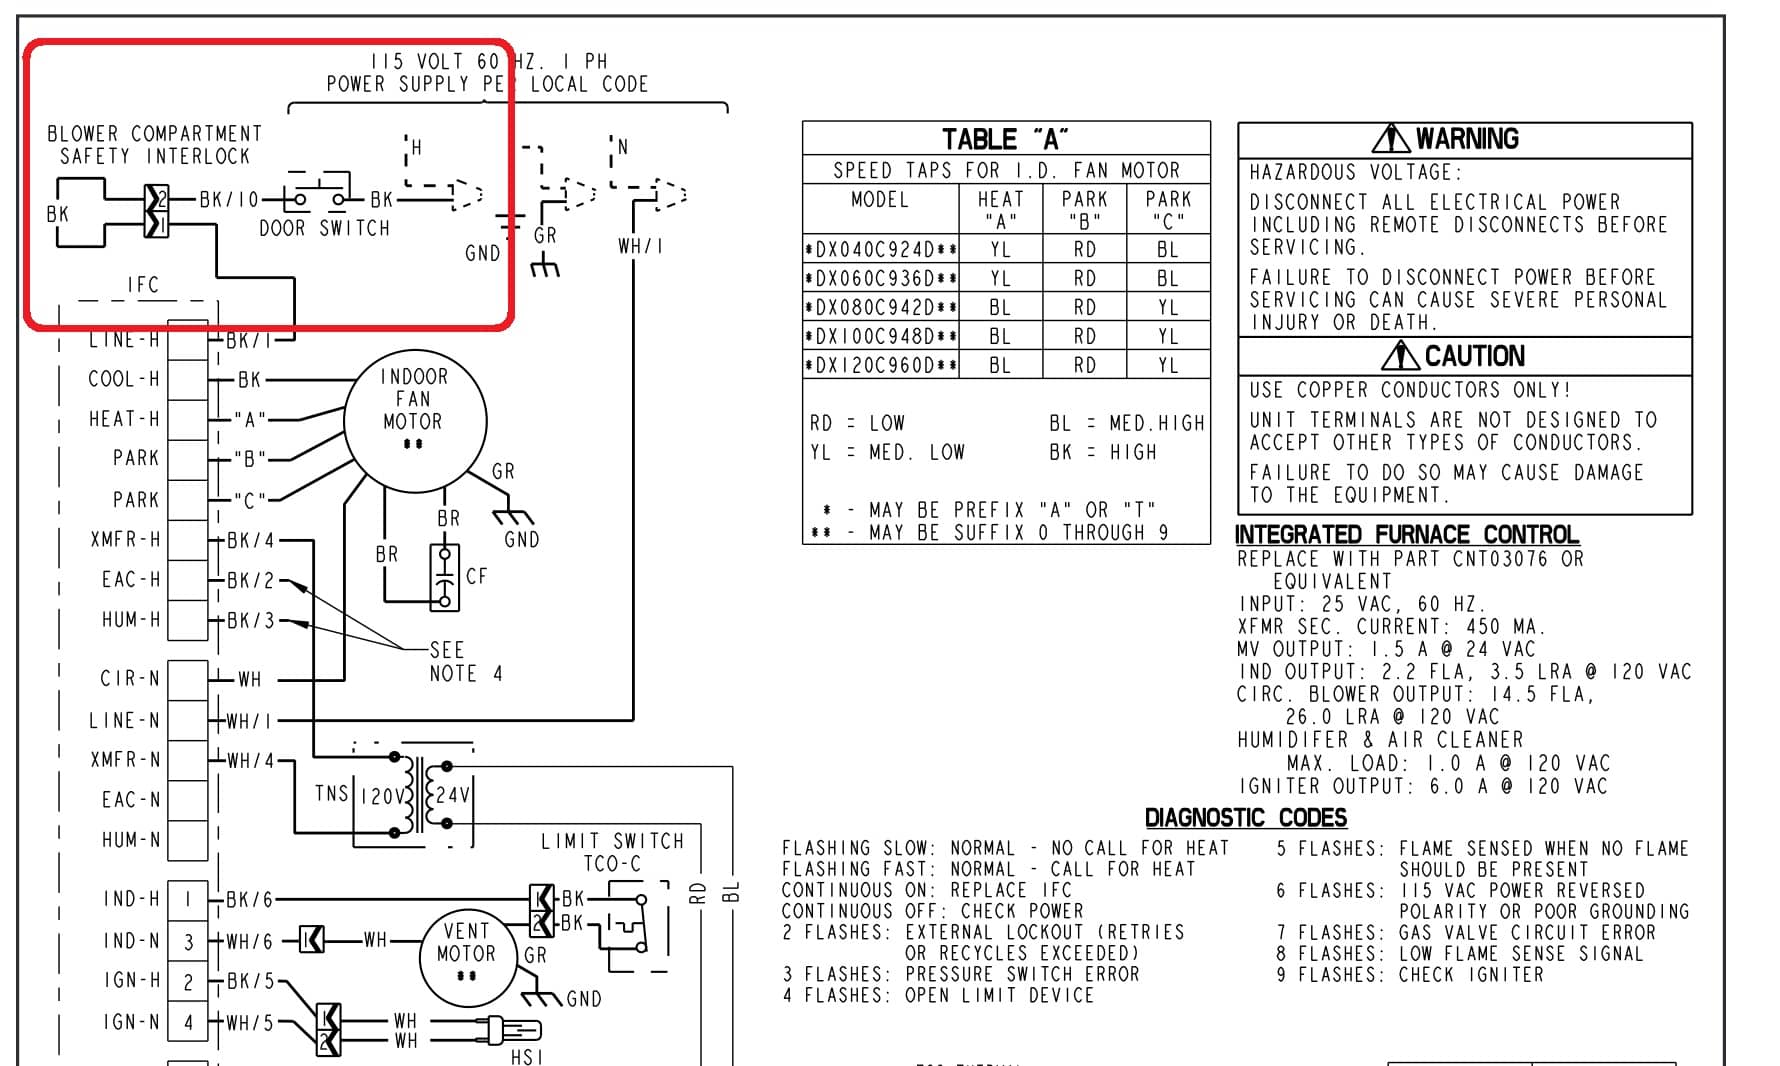 Rheem Split System Wiring Diagram furthermore Honeywell Thermostat 3 Wiring Diagram moreover Goodman Hkr 10cb Wiring Diagram likewise Wiring Help On Pumptrol Pressure Switch Doityourself 2 likewise Air Conditioning. on rheem heat pump schematic diagrams